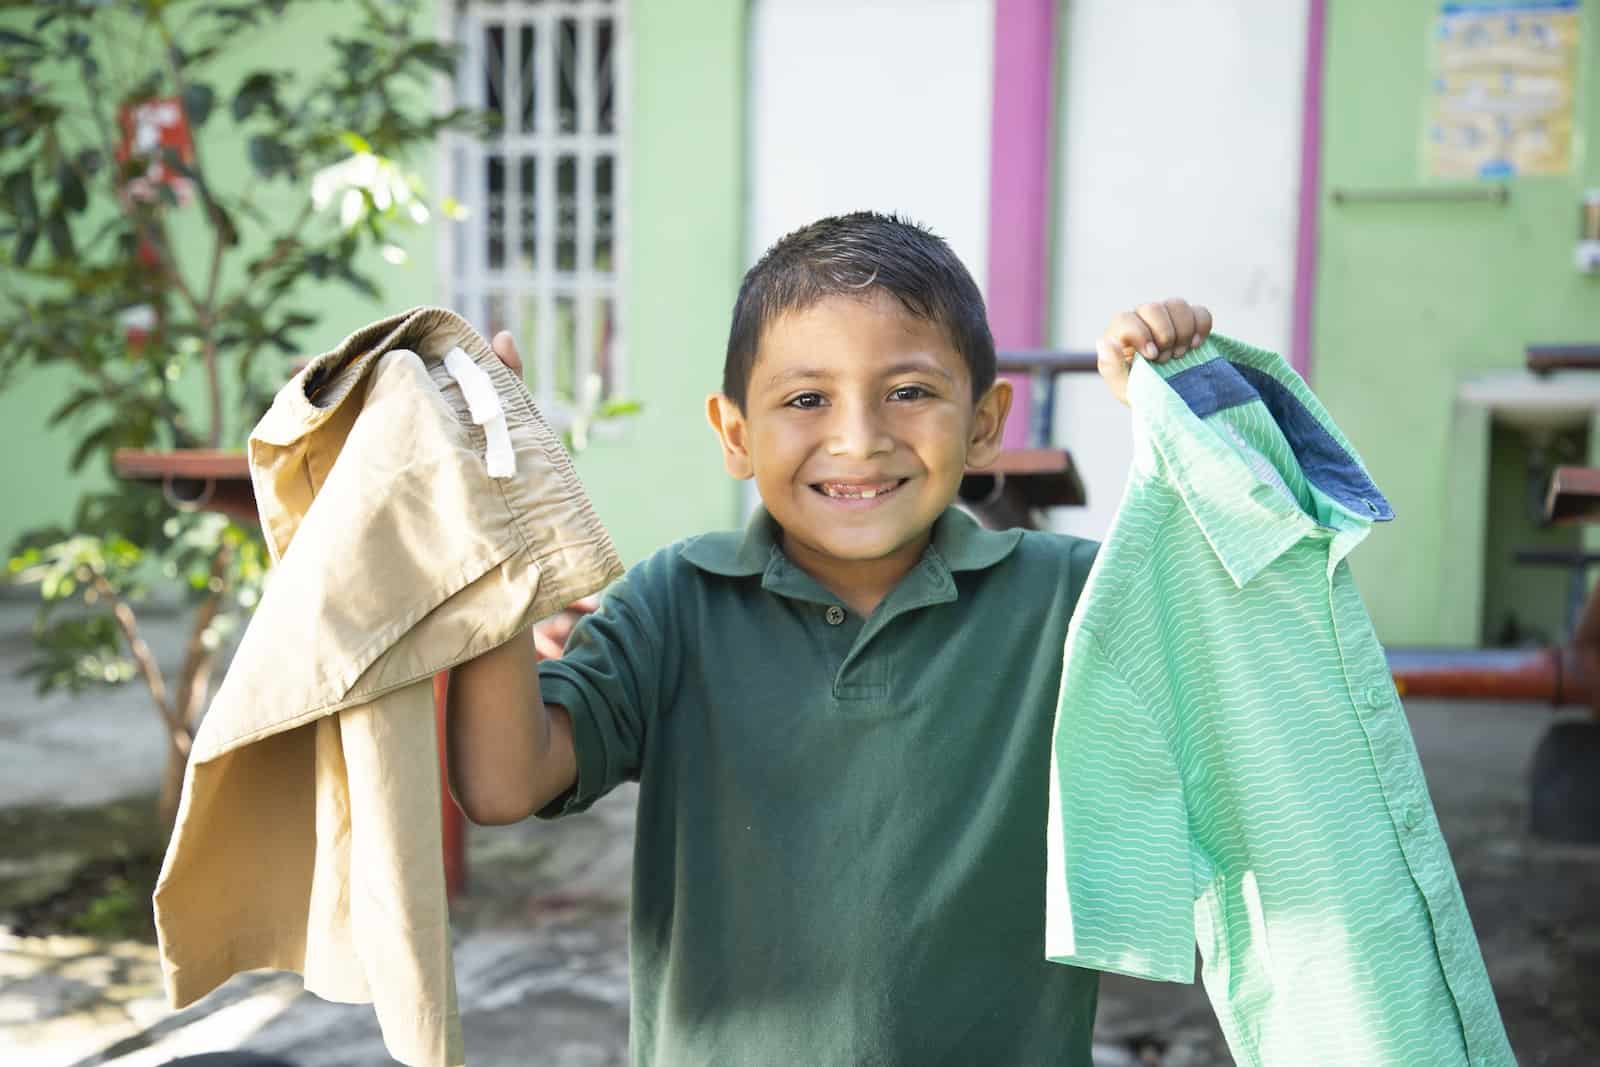 A boy holds up a shirt and pants, smiling.